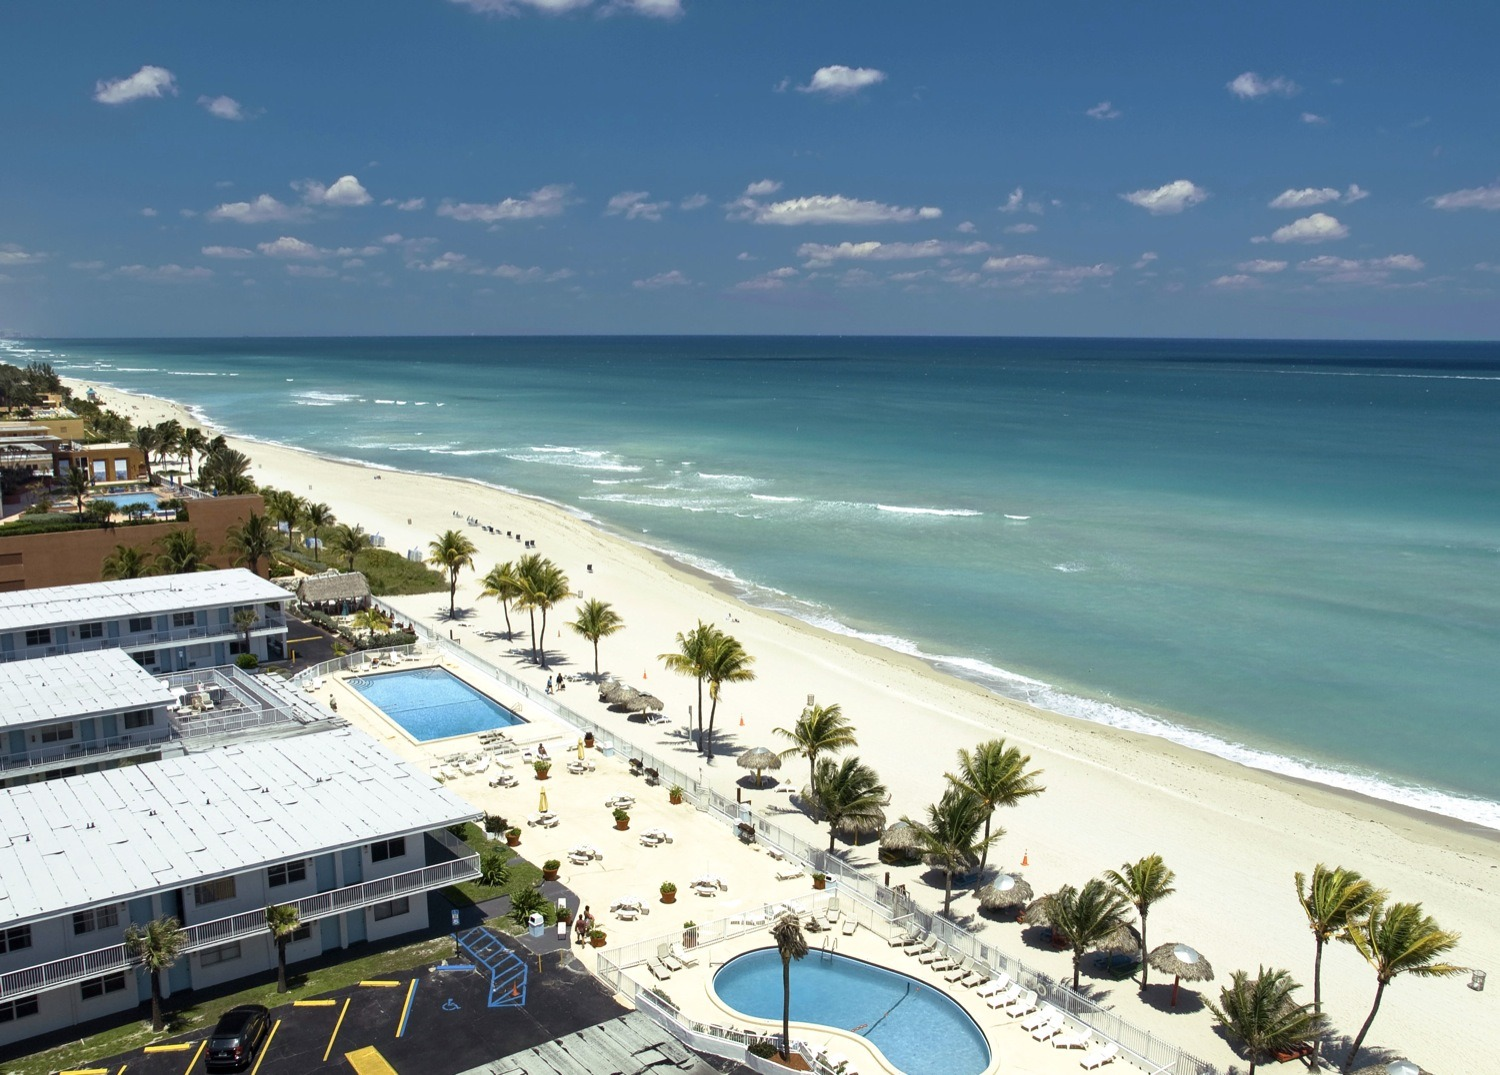 Best Hotels Near Miami